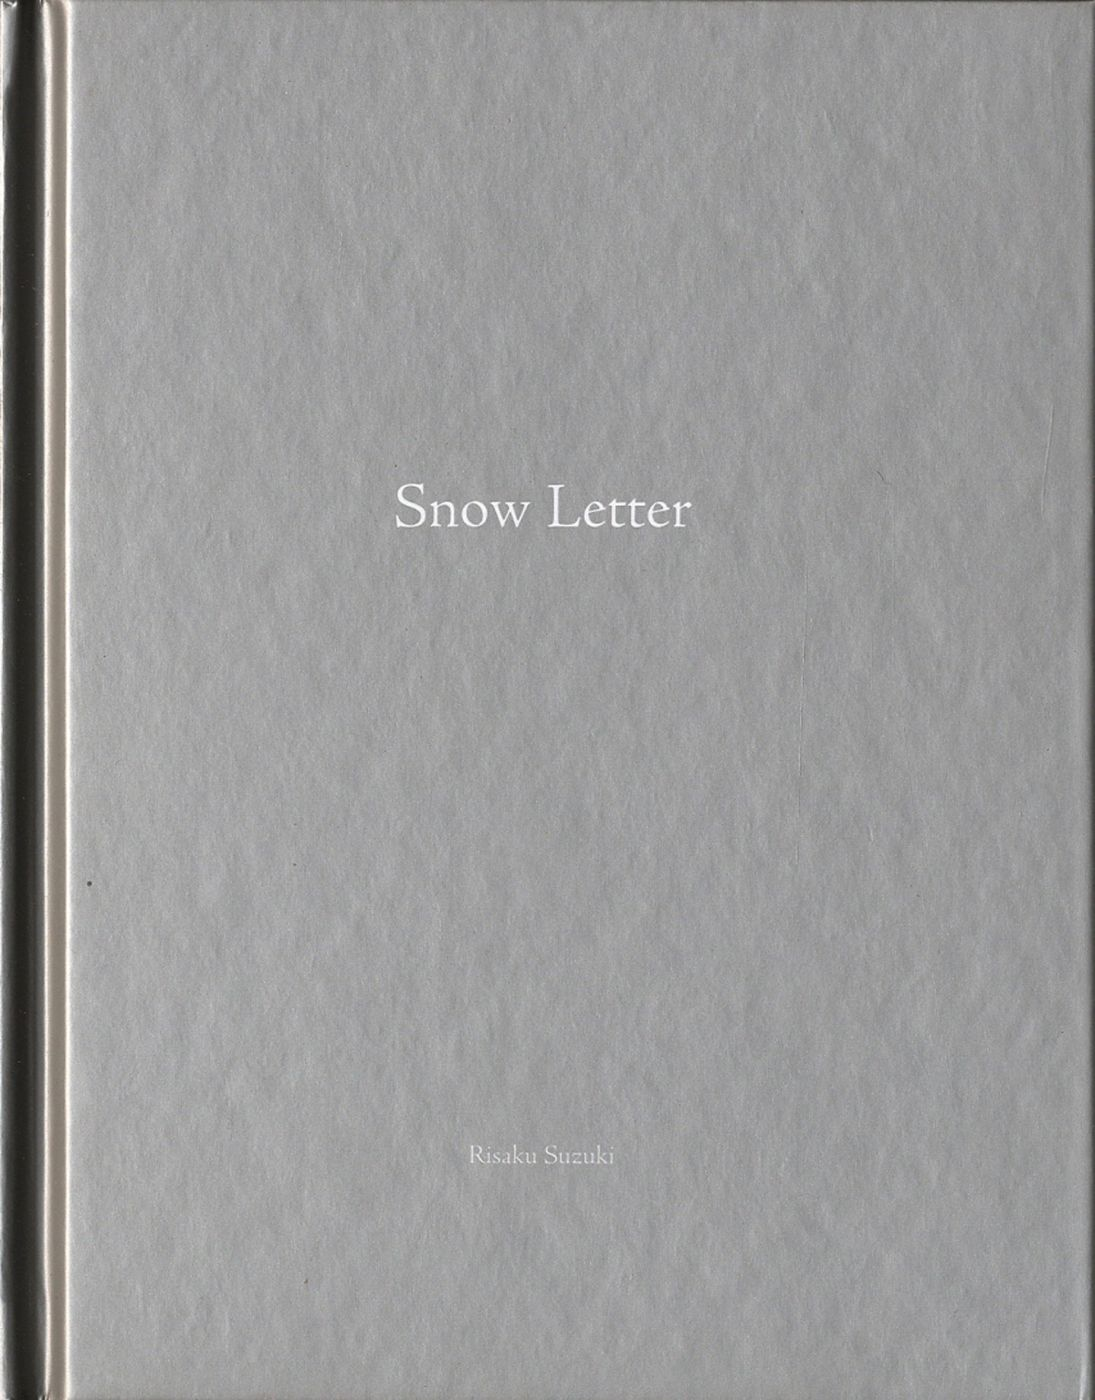 Risaku Suzuki: Snow Letter (One Picture Book #80), Limited Edition (with Print)